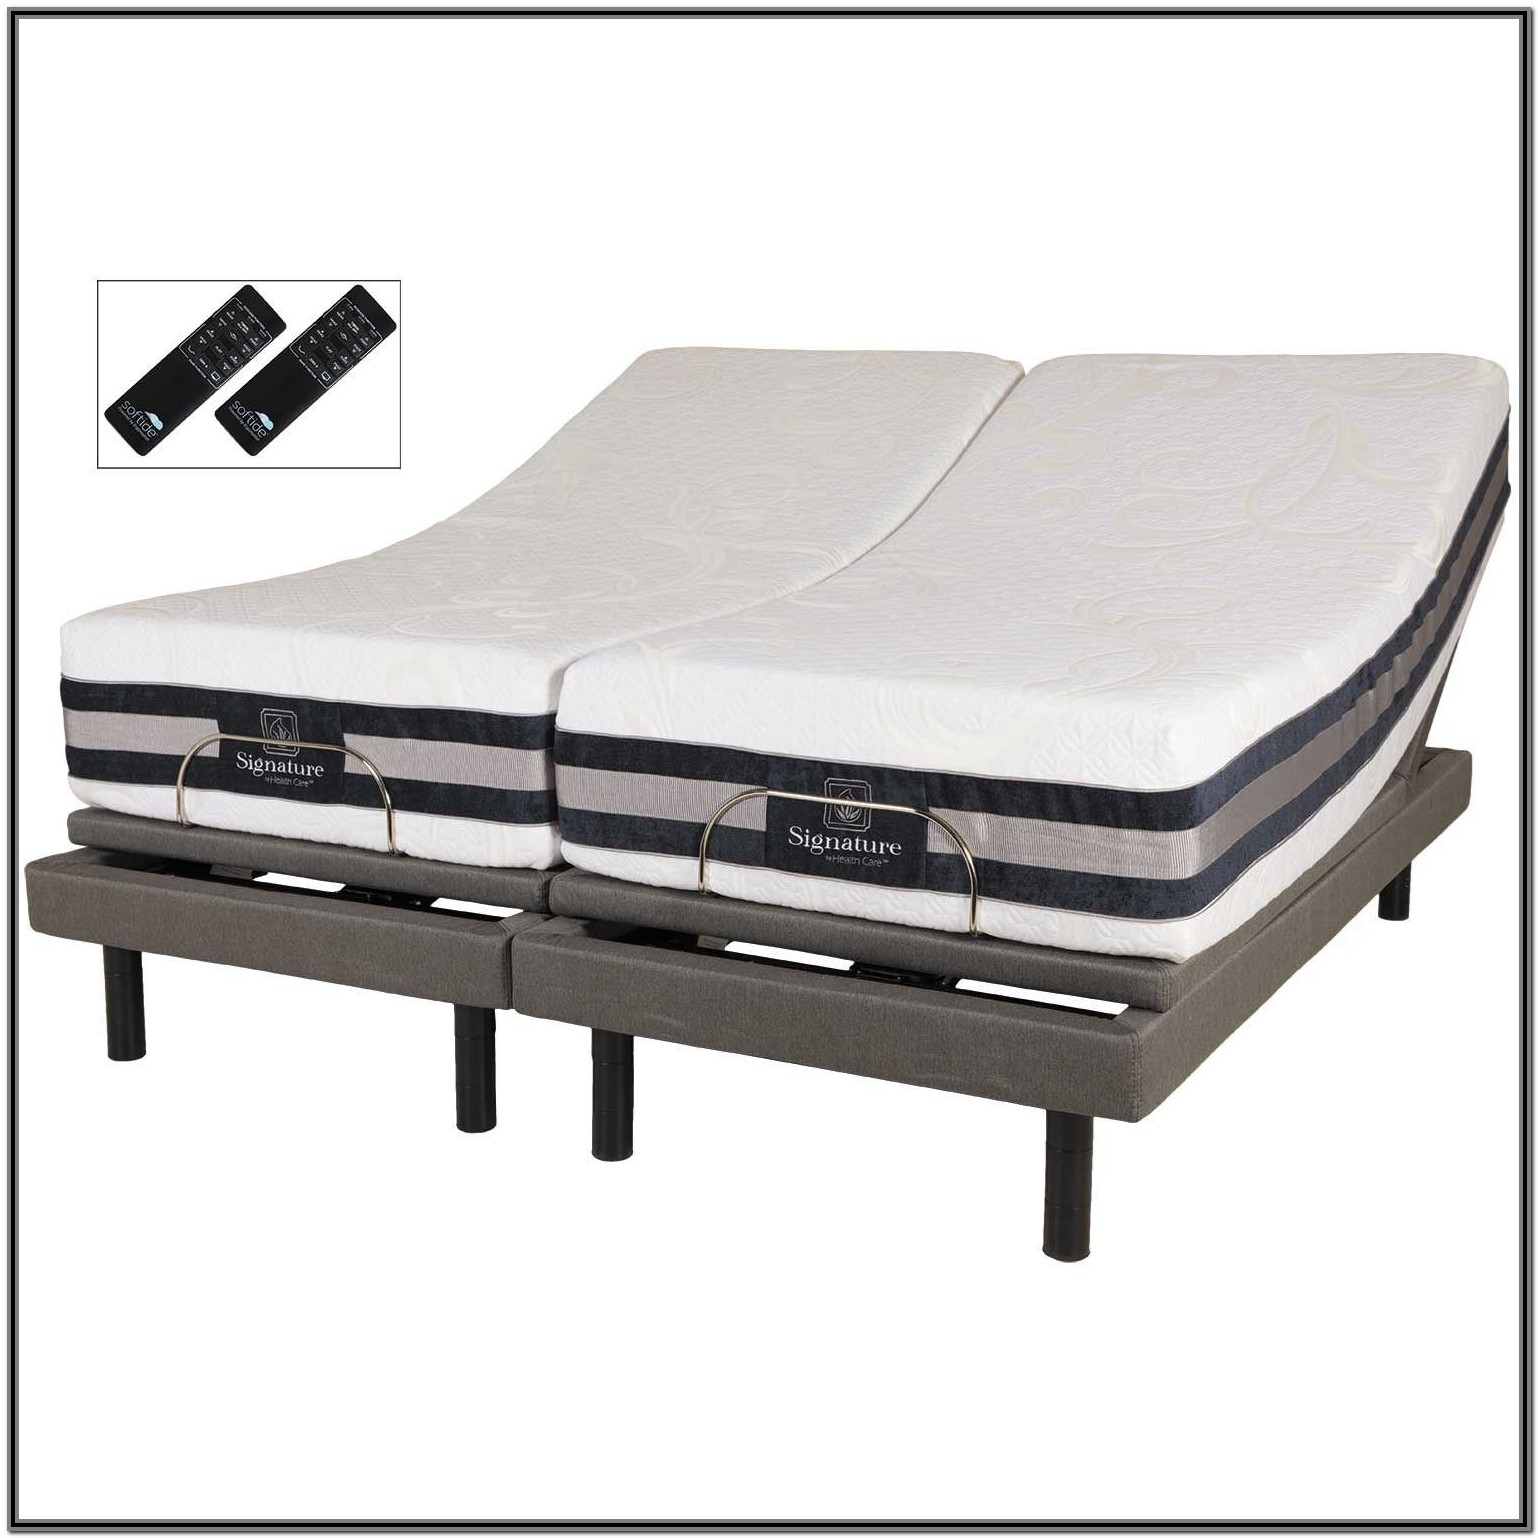 Adjustable Beds King Size Near Me